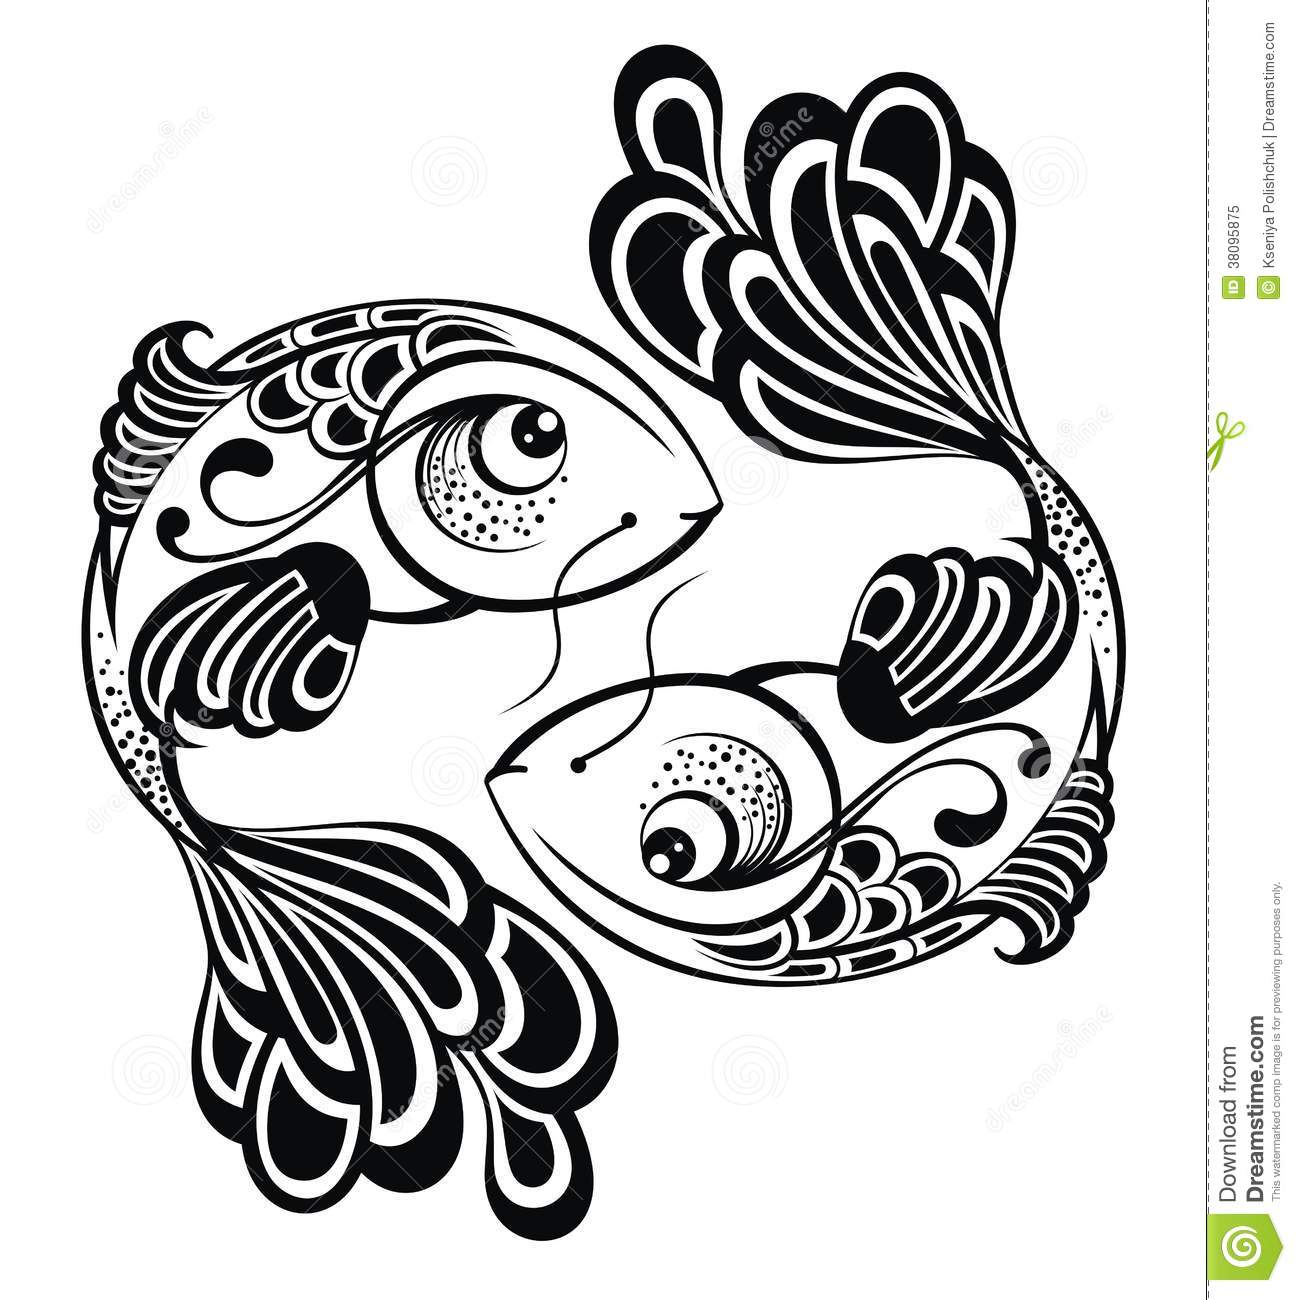 Zodiac Signs - Pisces. Tattoo Design Royalty Free Stock Photo - Image ...